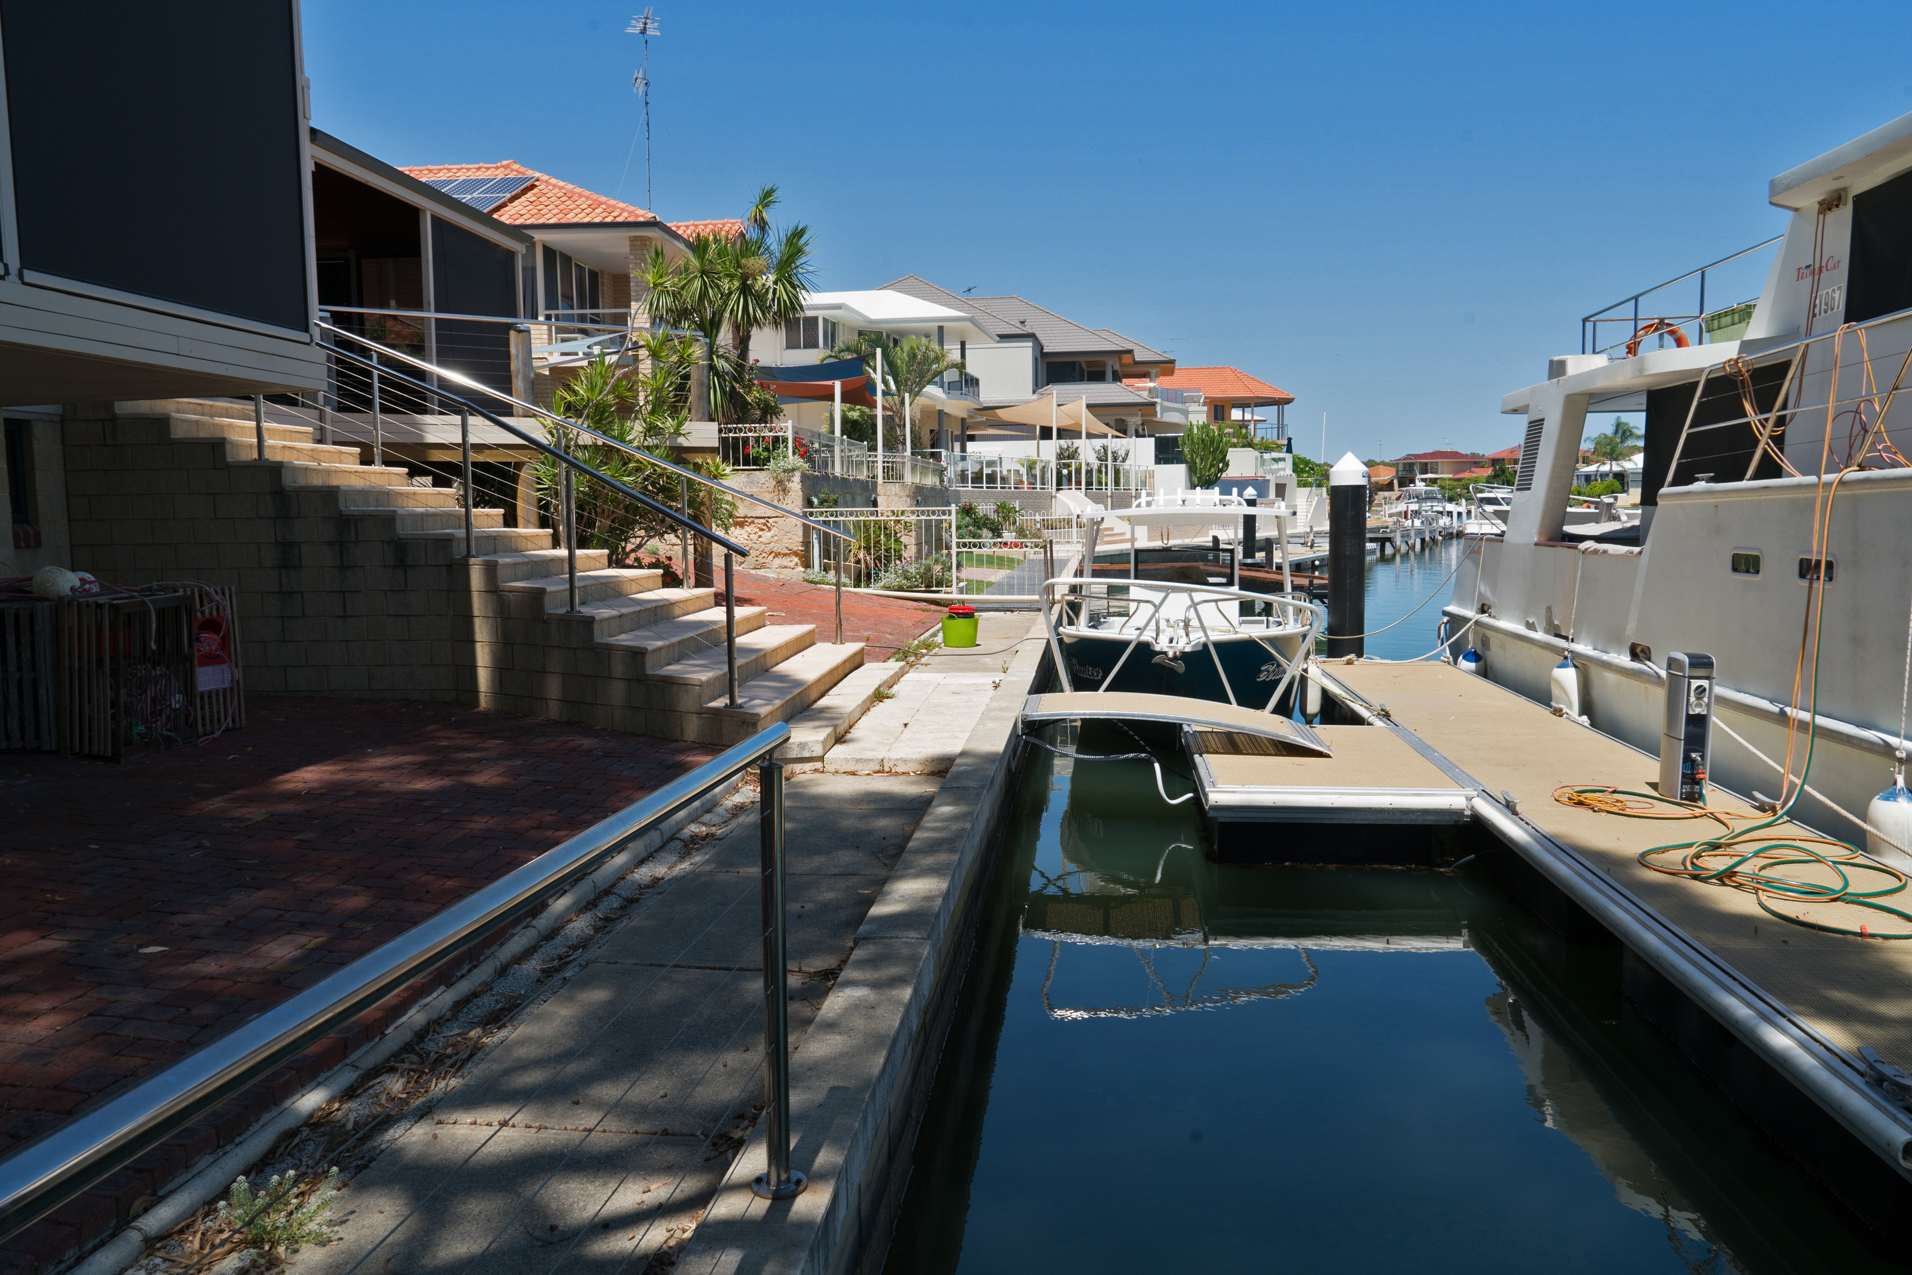 Plate 12: Typical waterfront in the canal estate with only residents having access